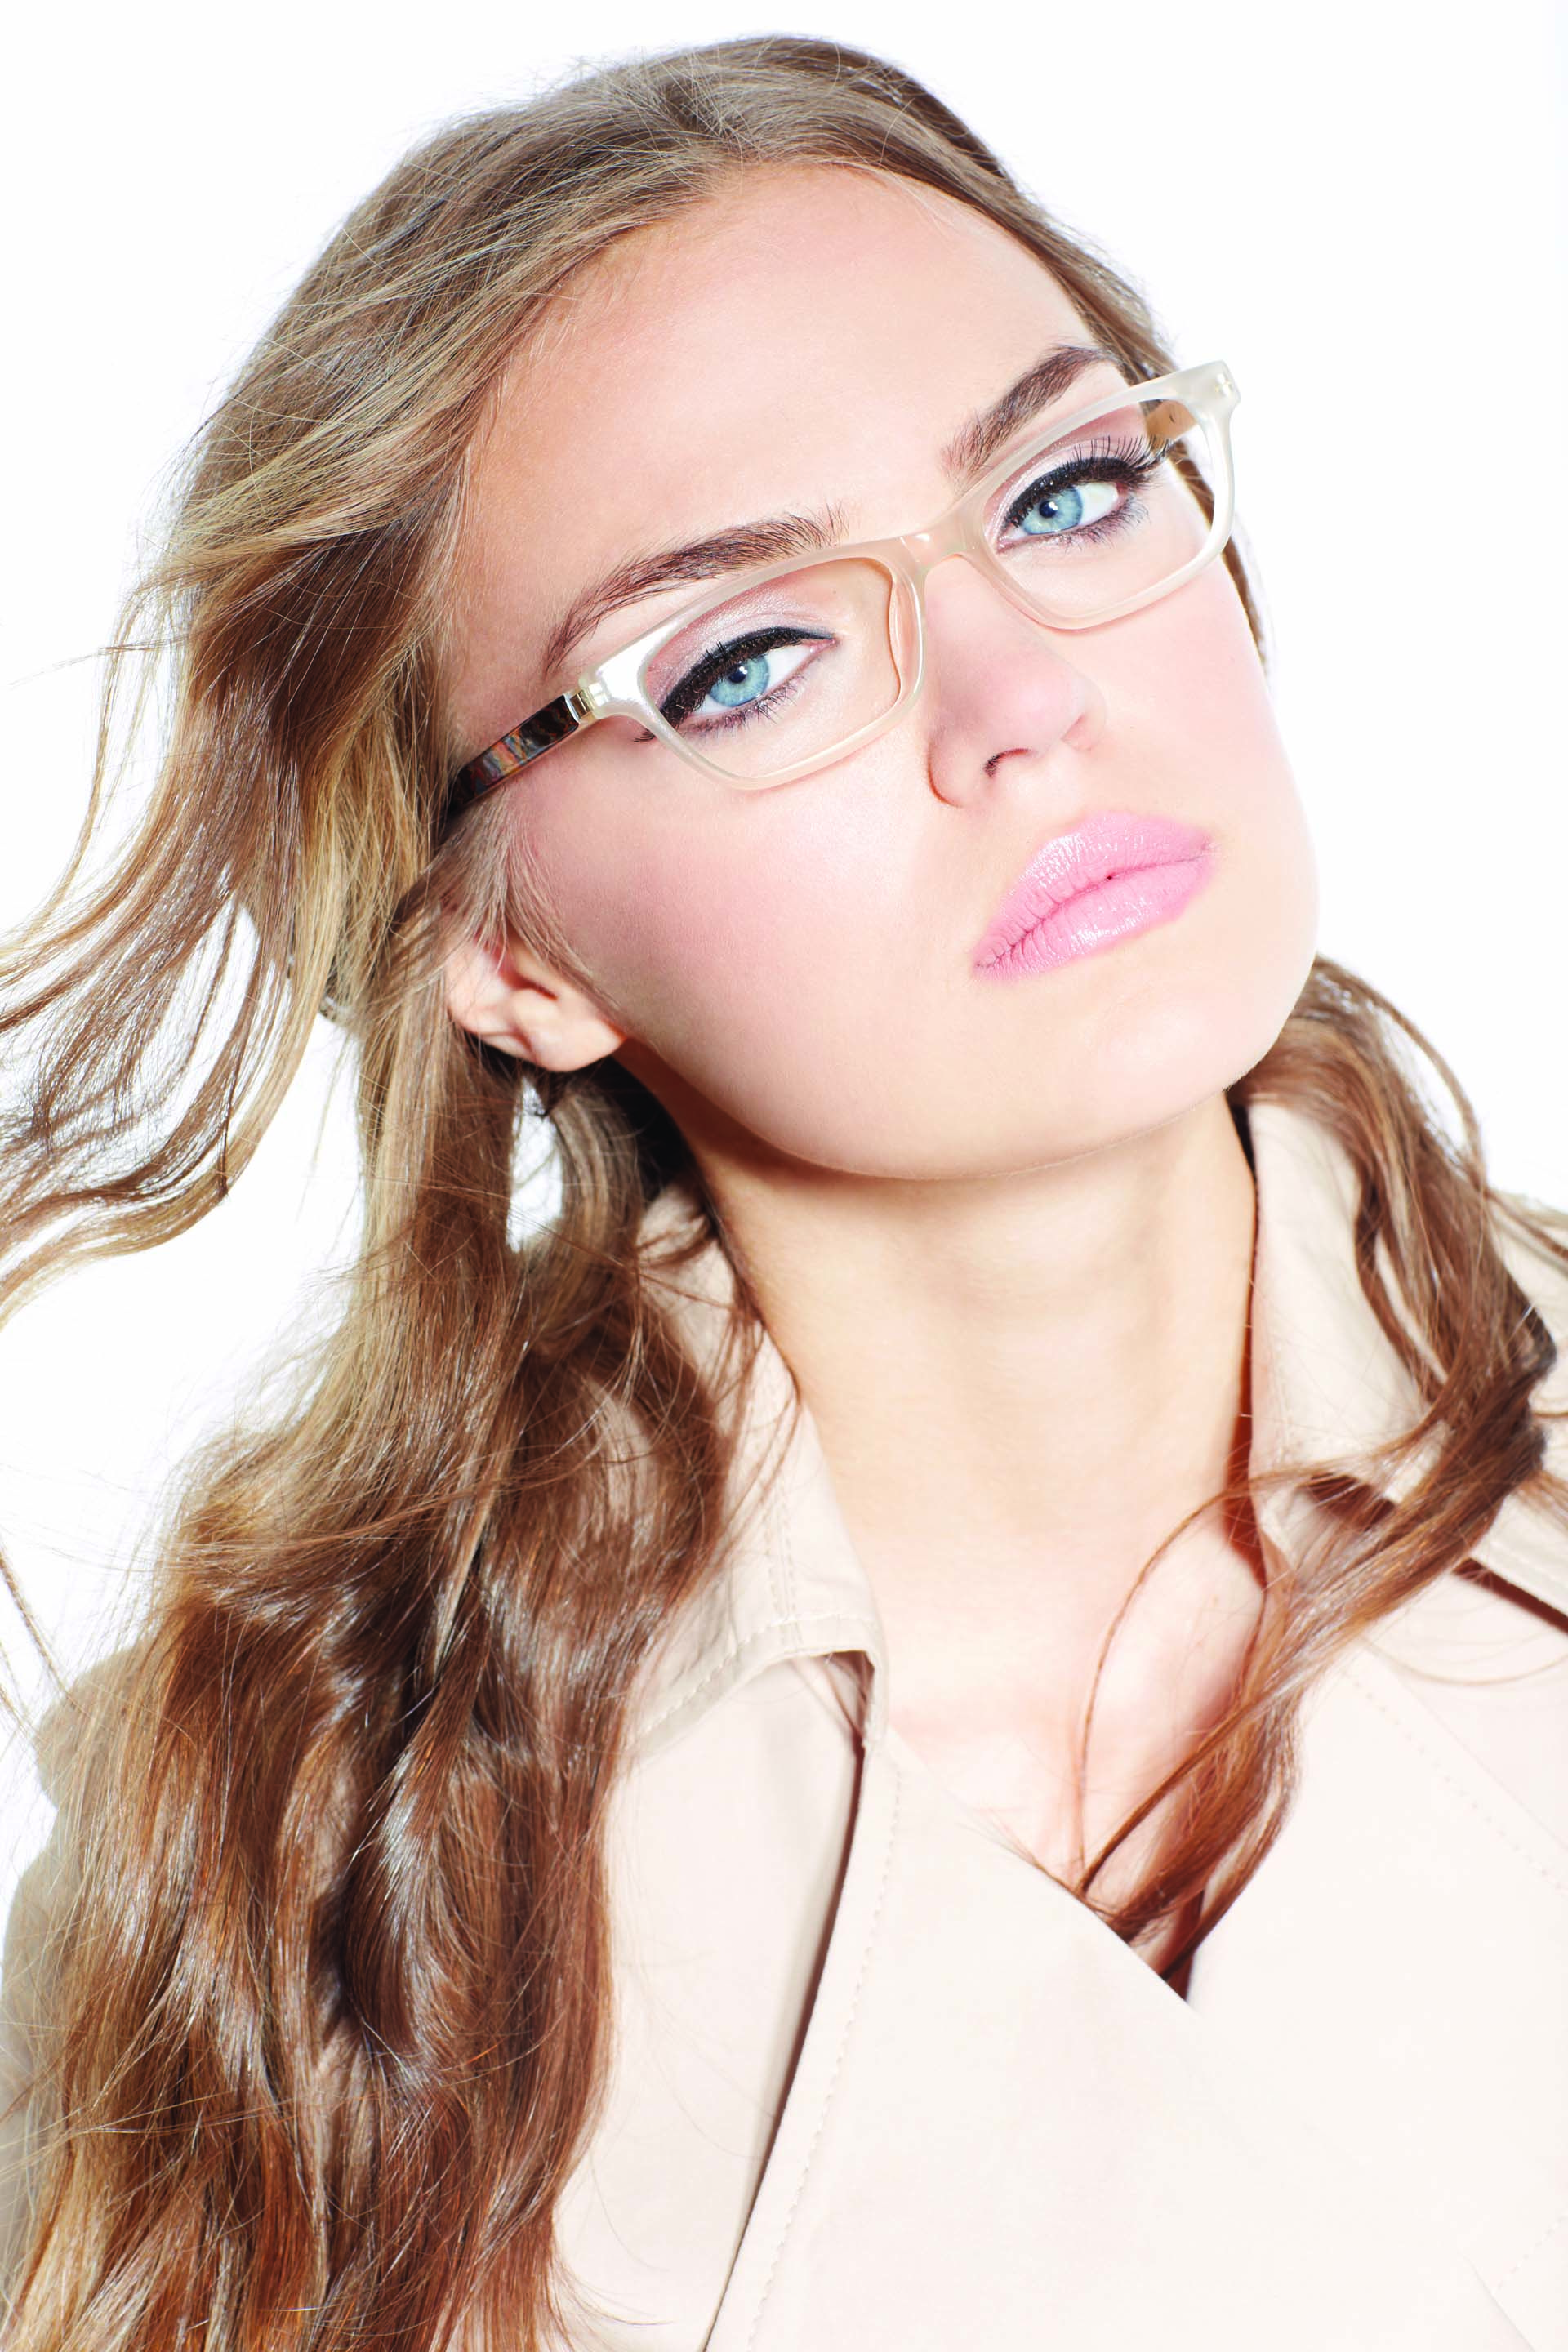 Just frames for glasses - We Just Got This Frame In And It S Super Cute Kensie Spring 13 Featuring The